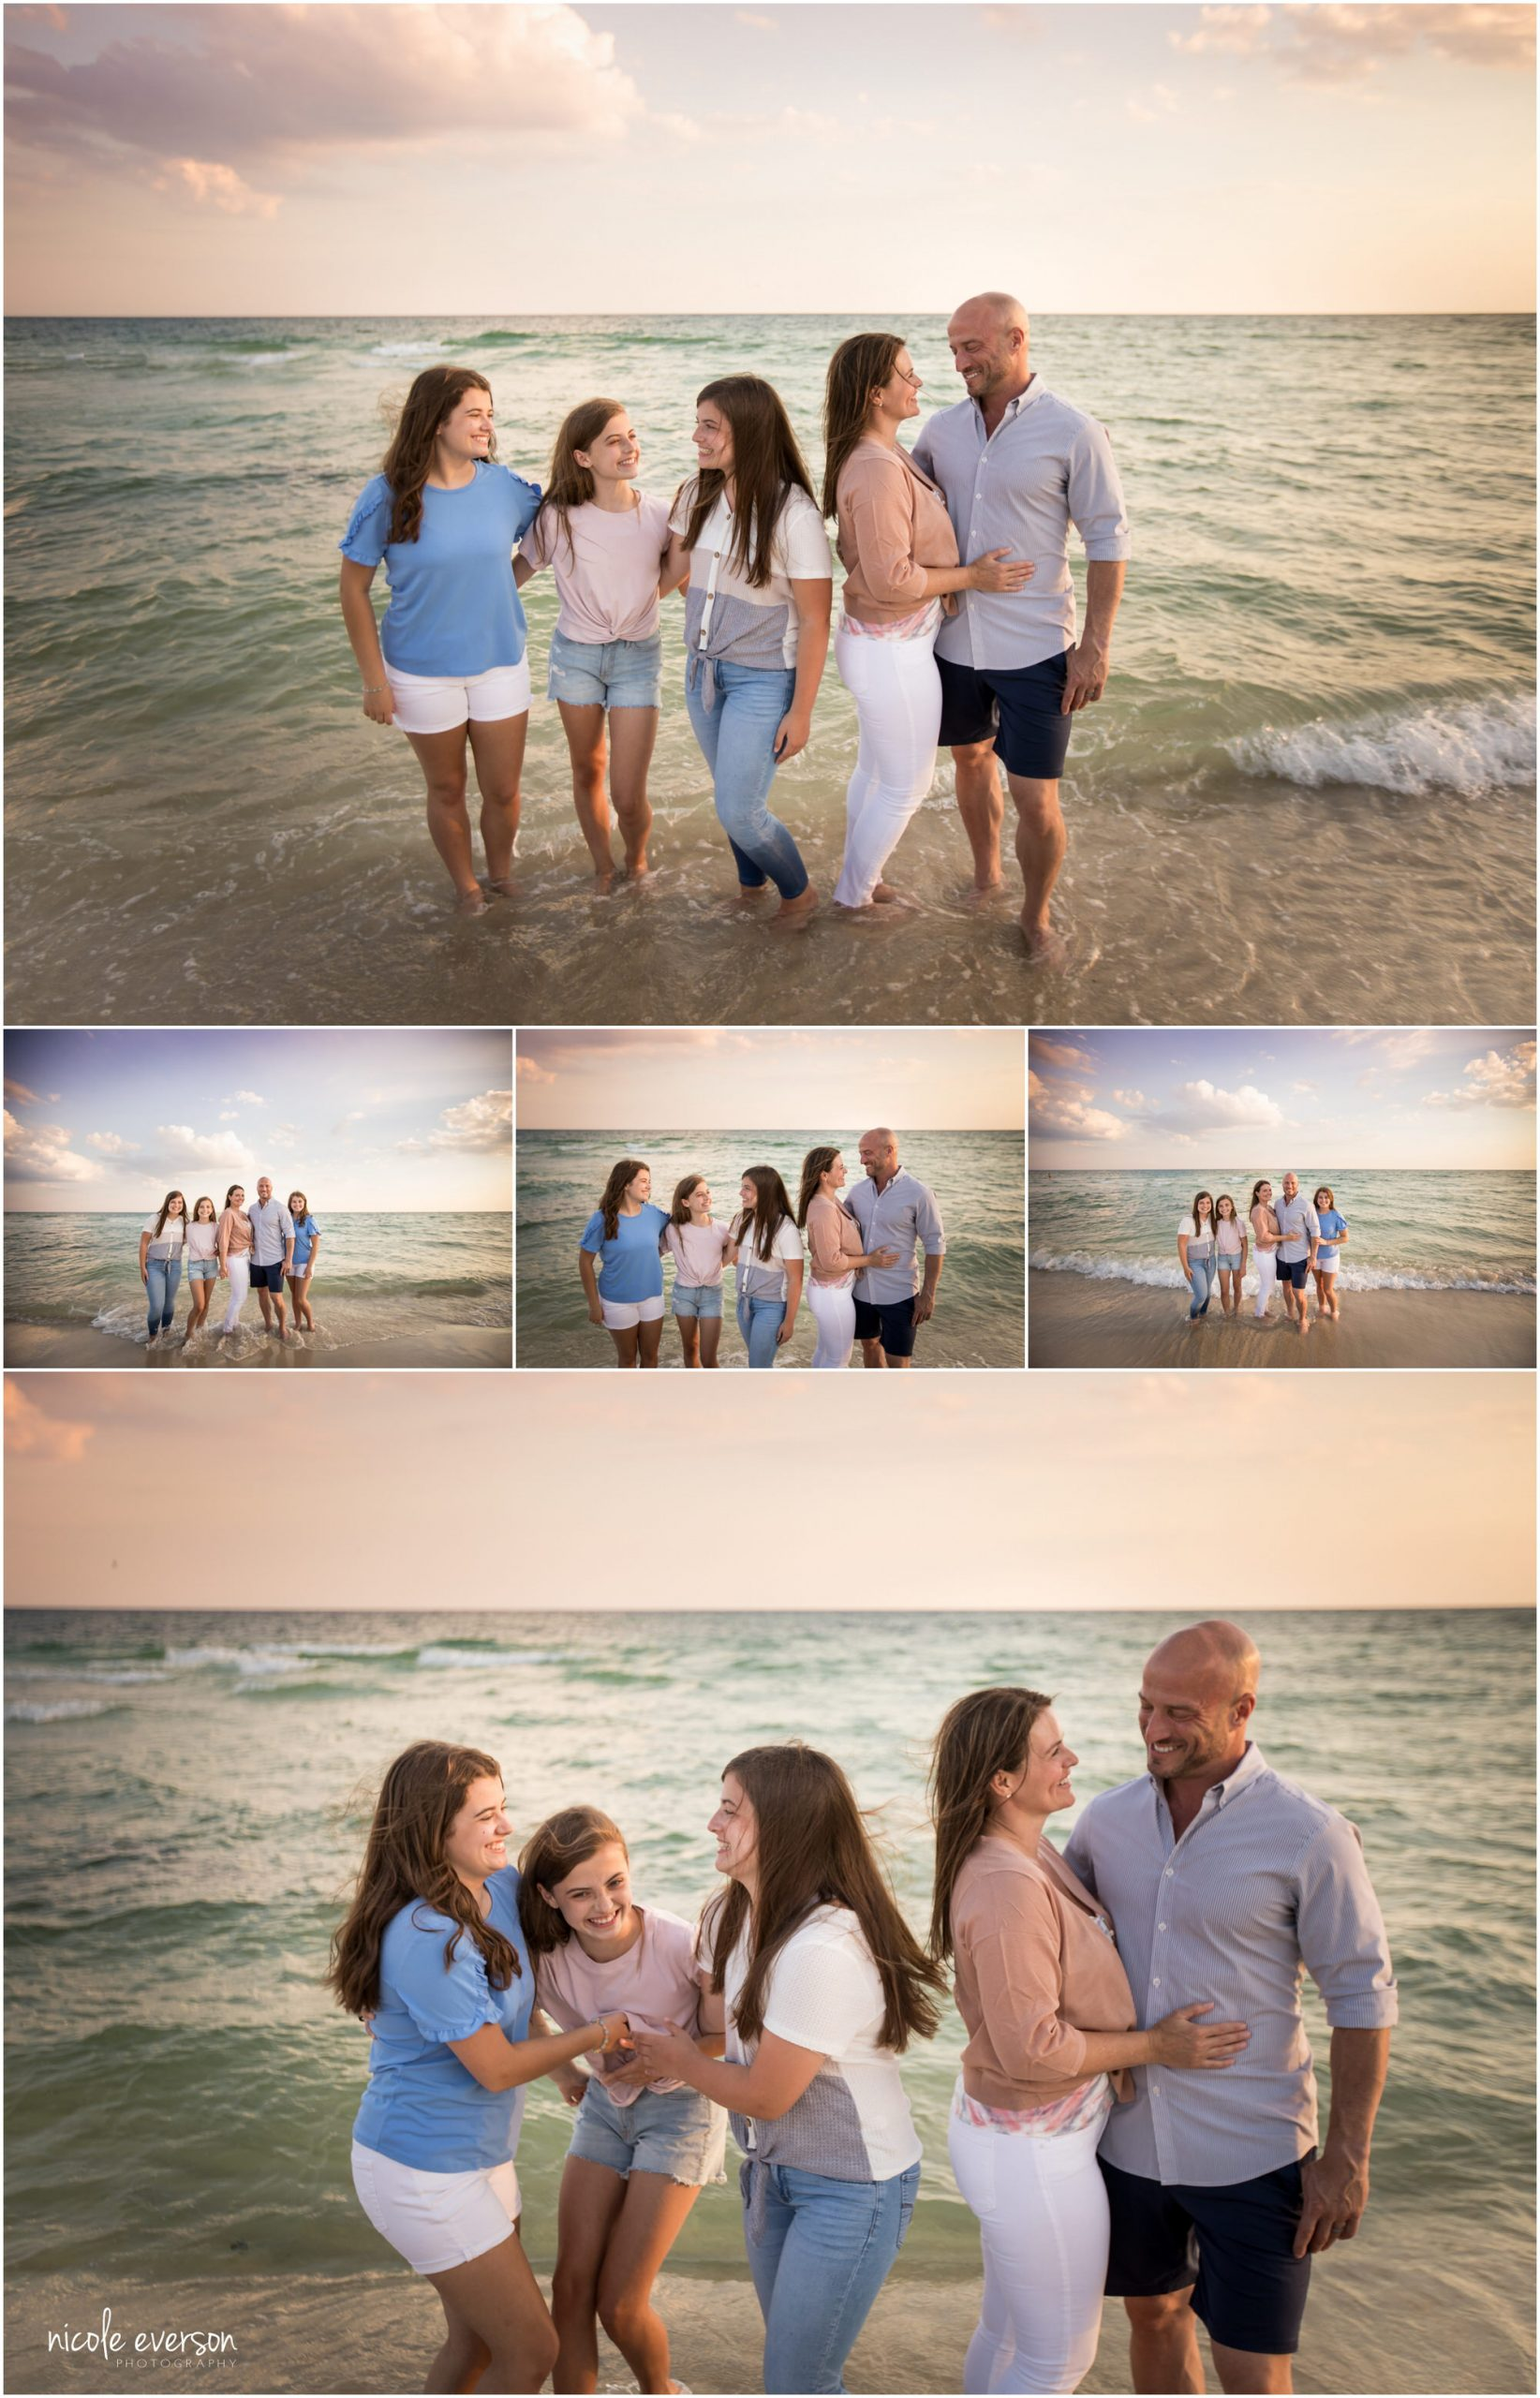 30a family beach portraits. Nicole Everson Photography.